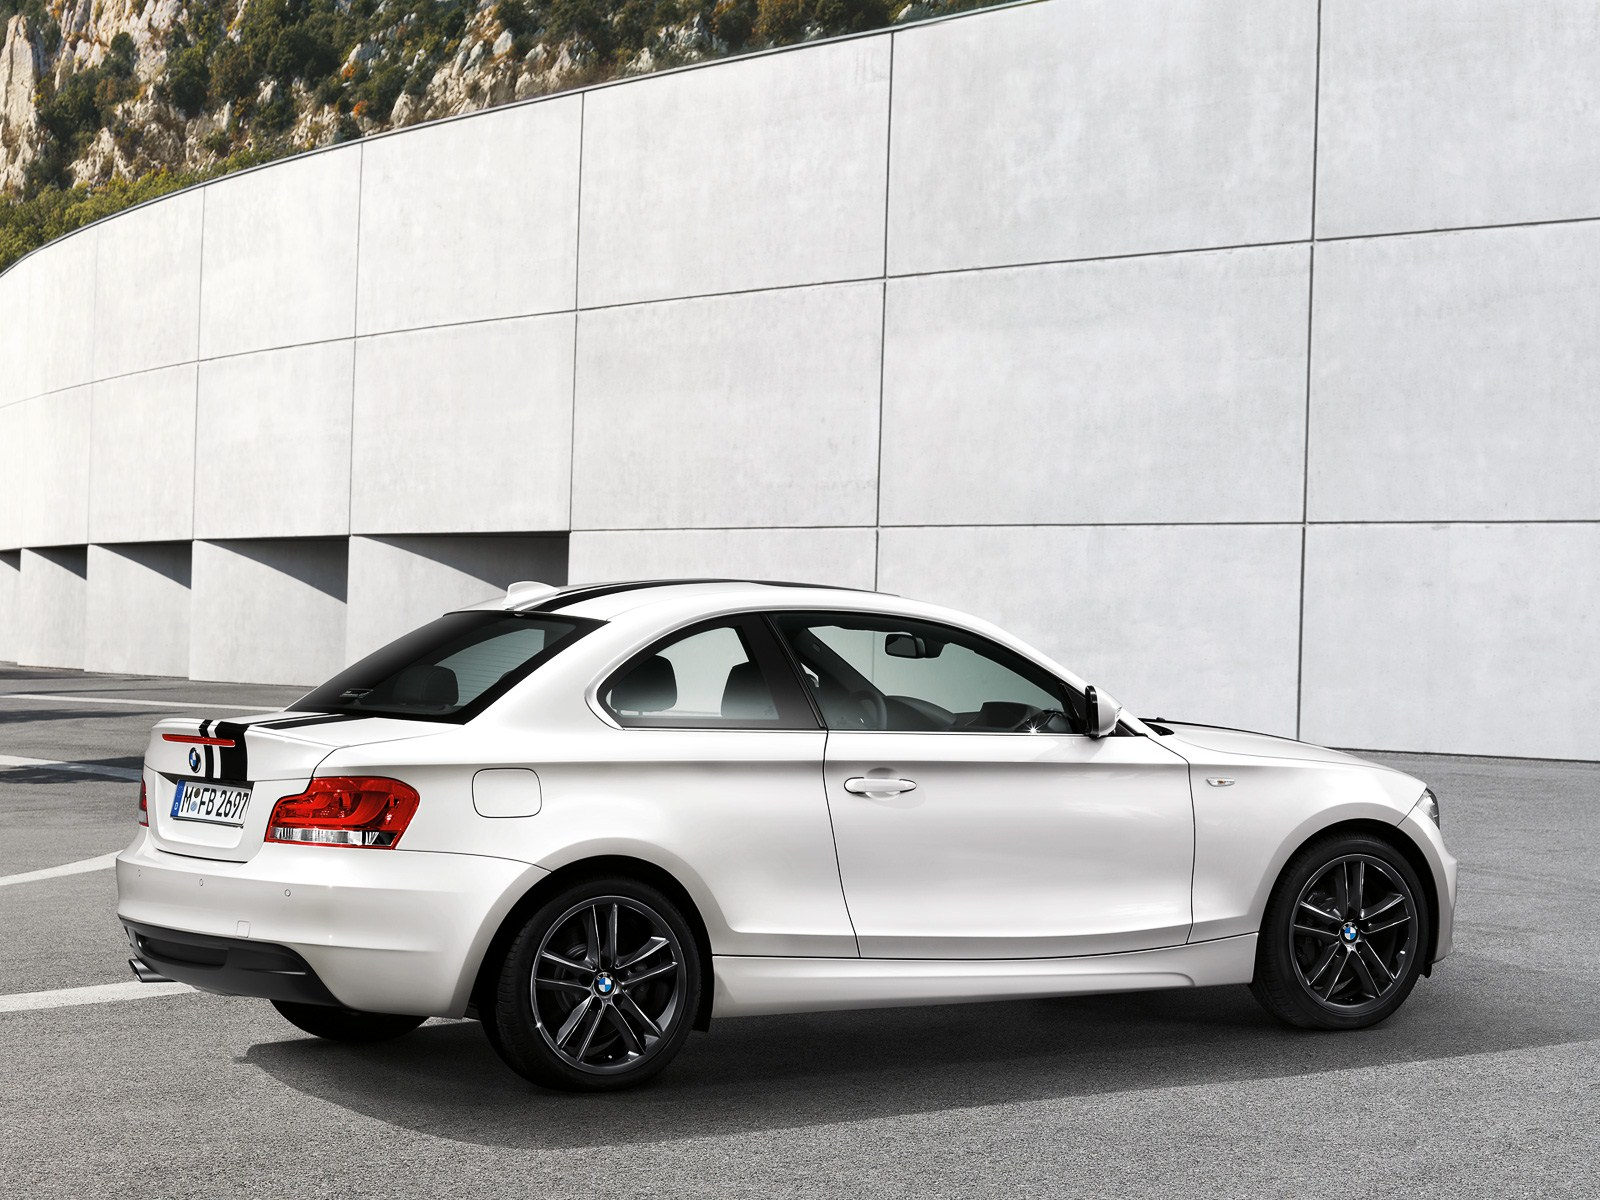 bmw 1er coupe (e82) 2011 images